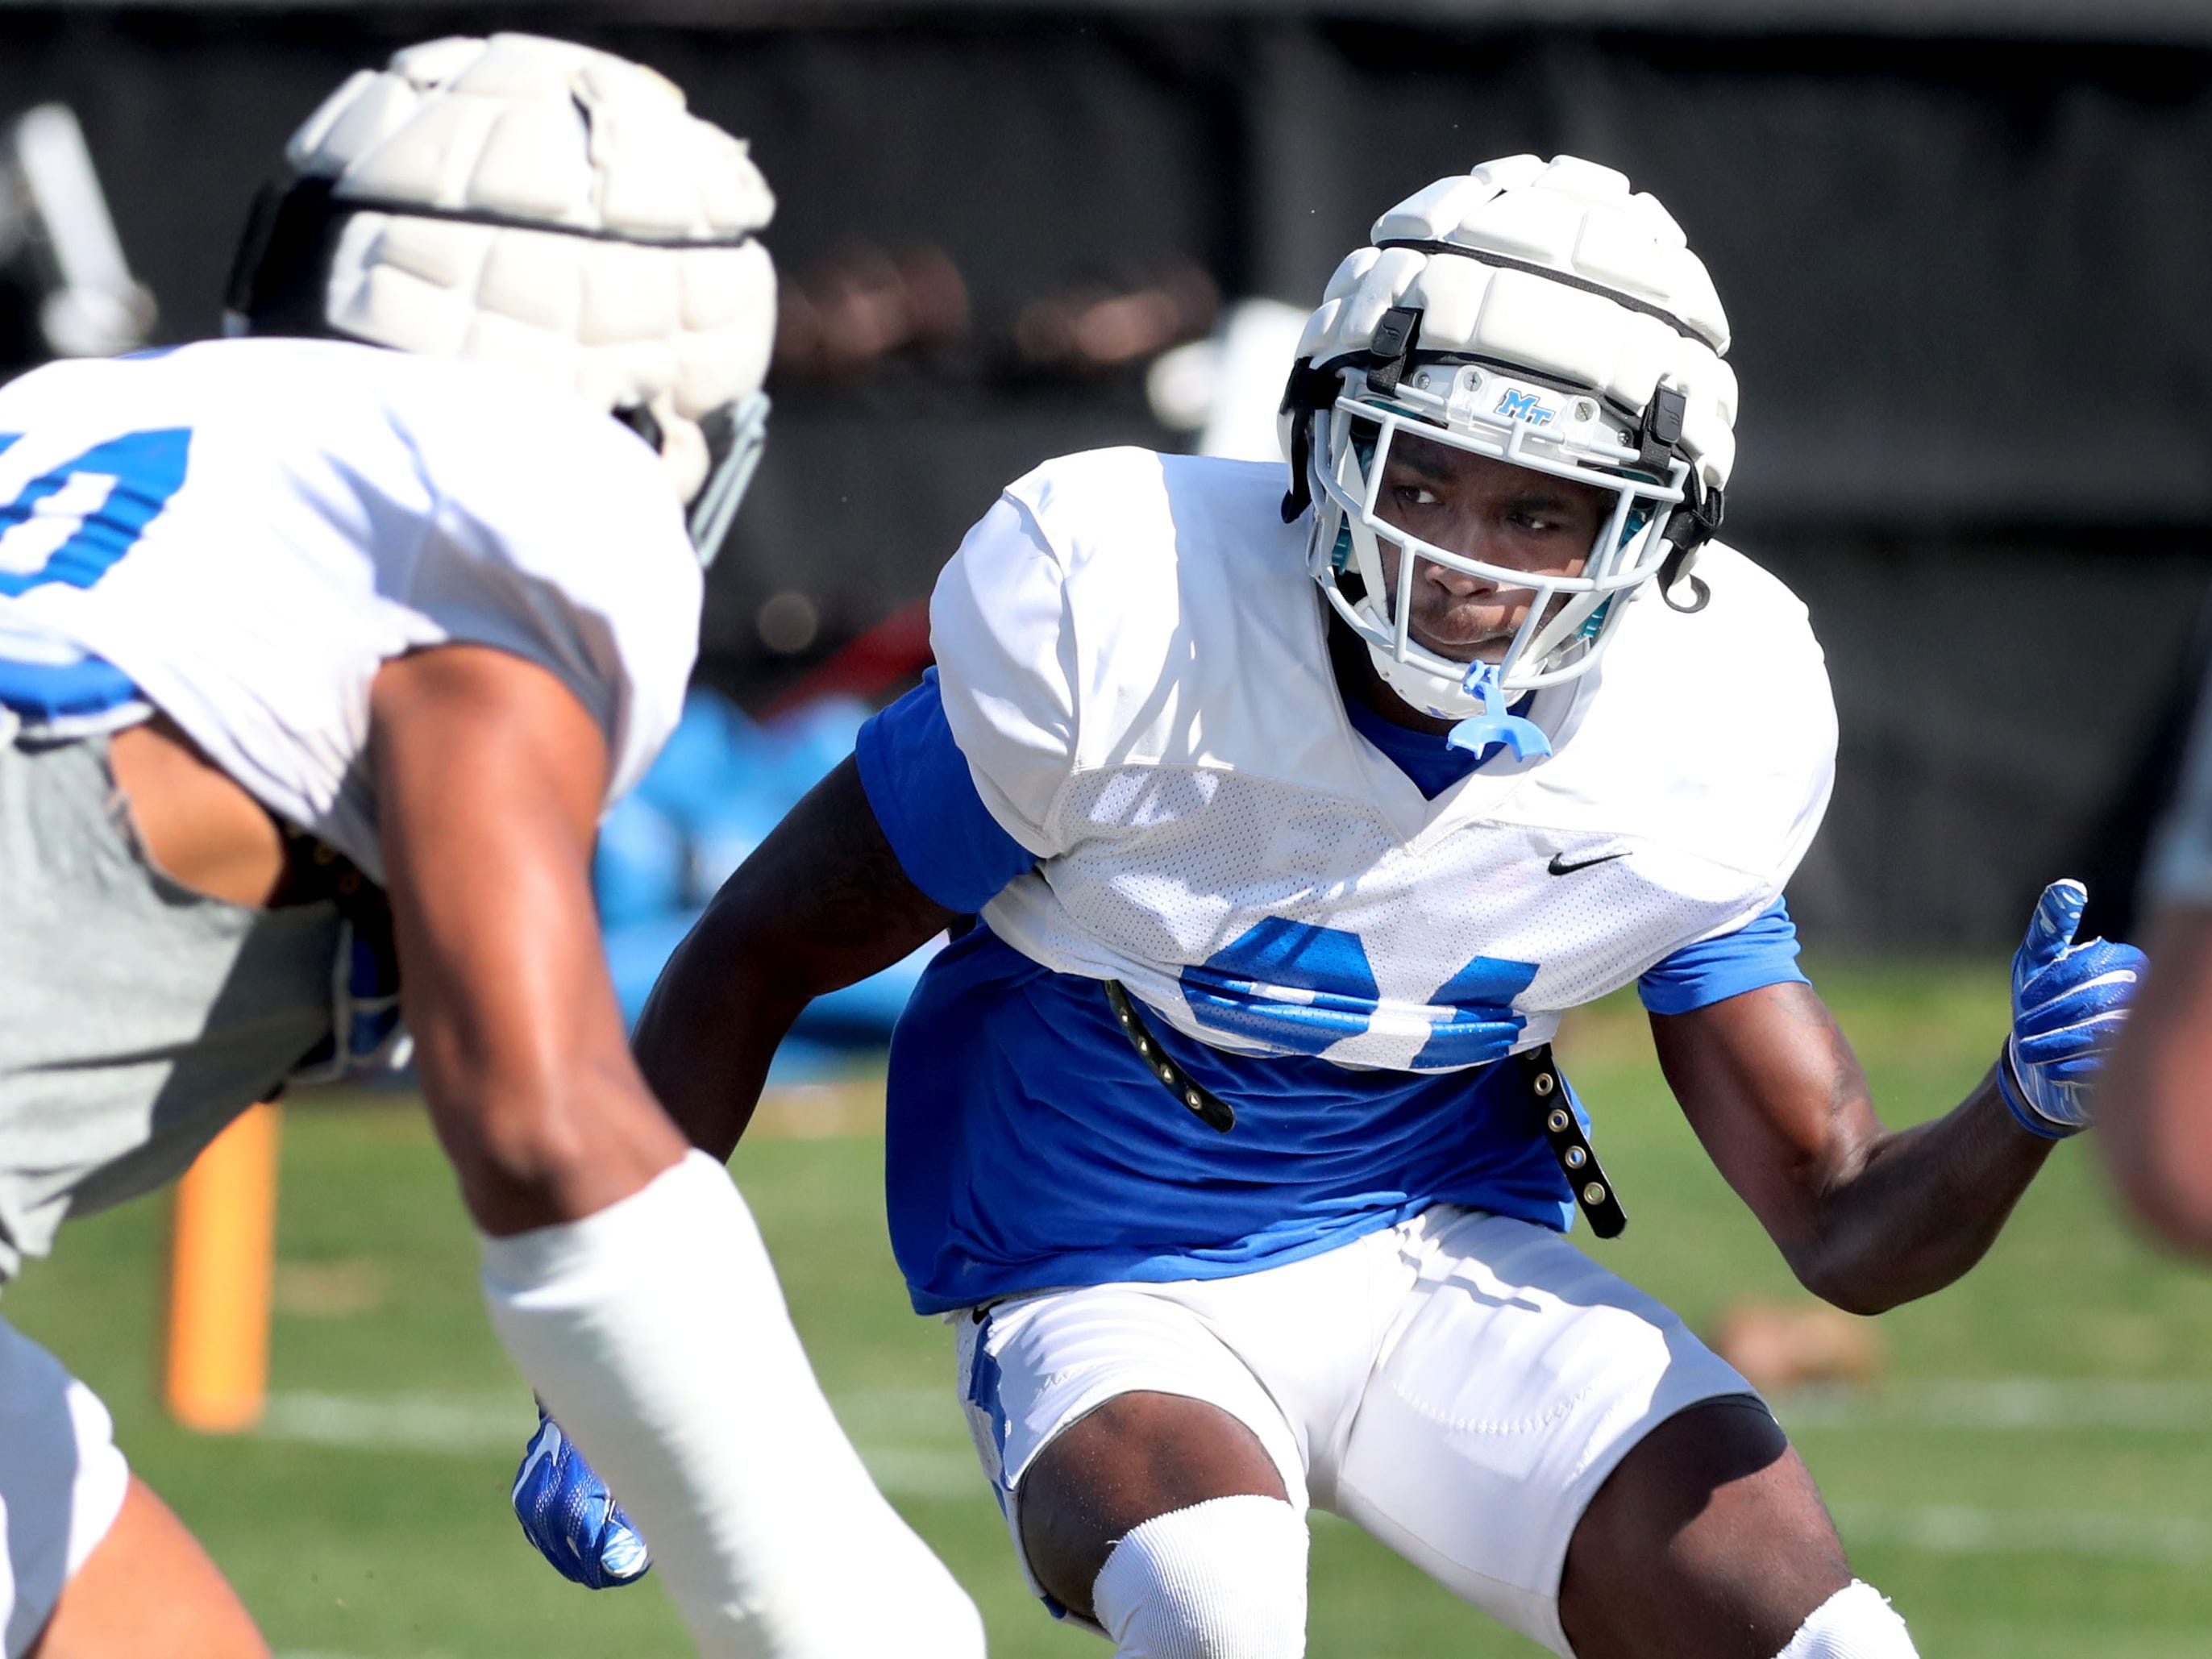 MTSU's cornerback Justin Brown (31) runs a drill during MTSU's football practice as MTSU's linebacker Jarek Campbell (10) moves in on Tuesday April 9, 2019.